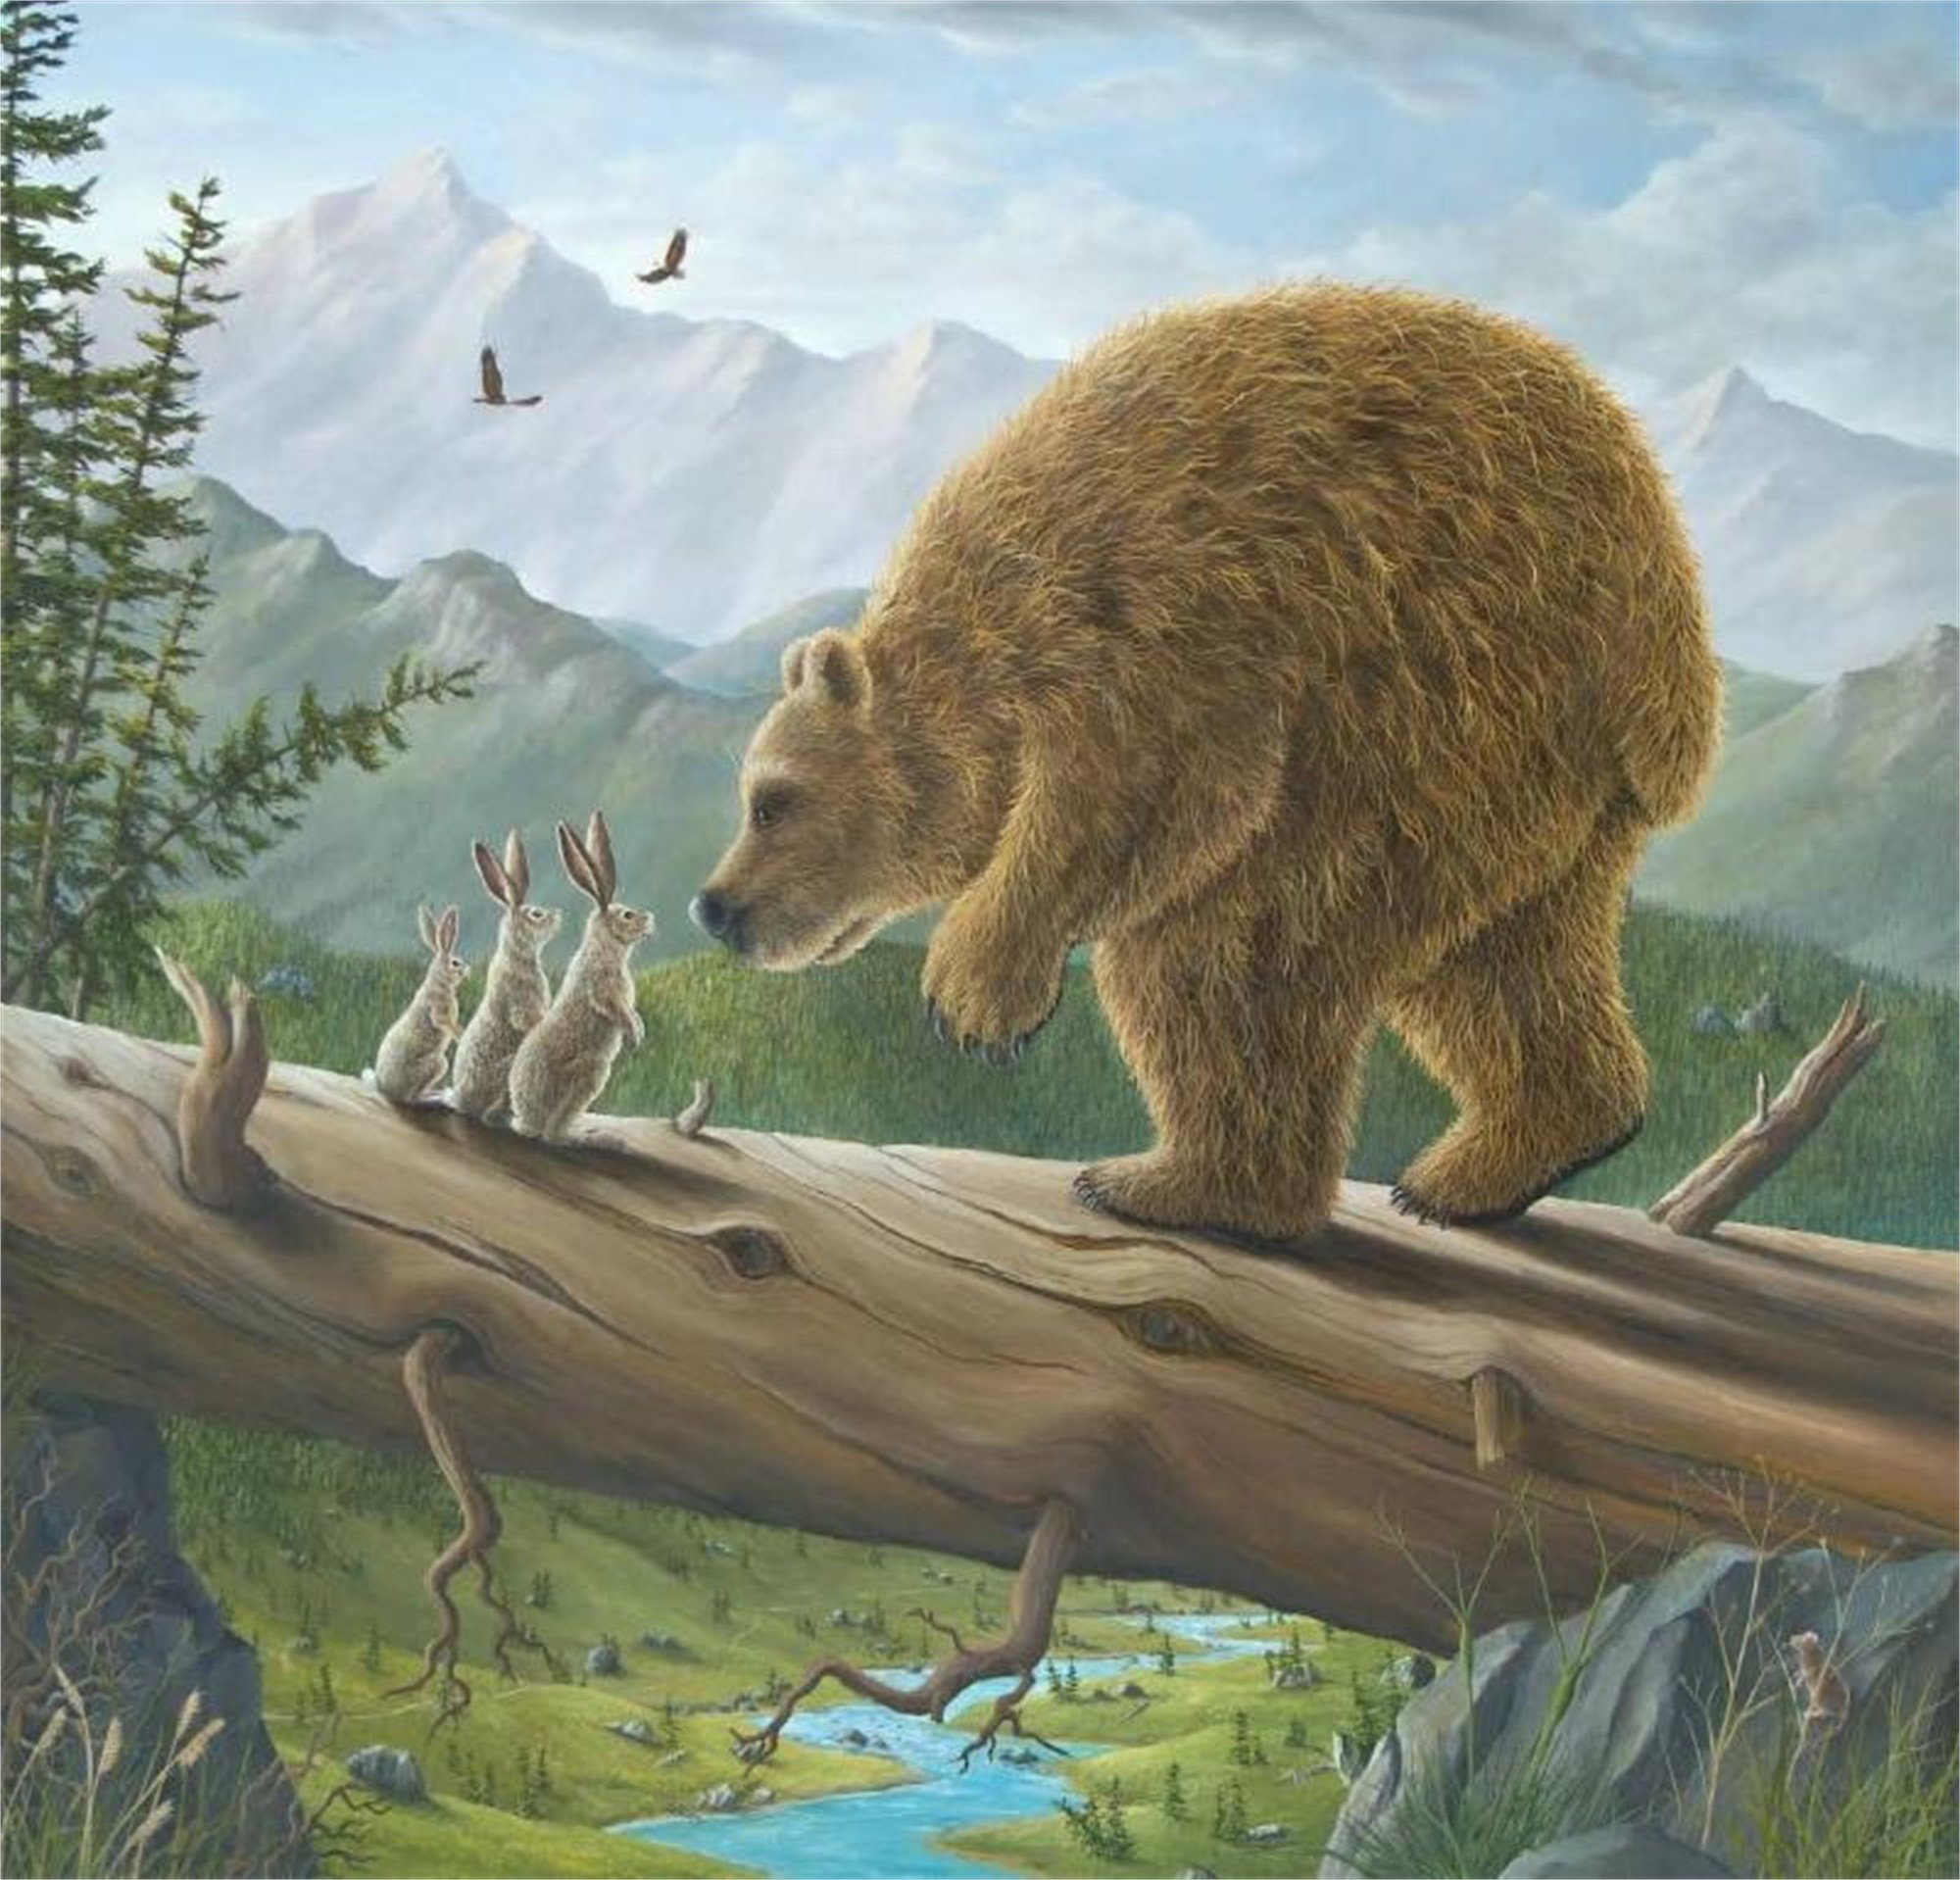 Encounter, The (Small Works) by Robert Bissell